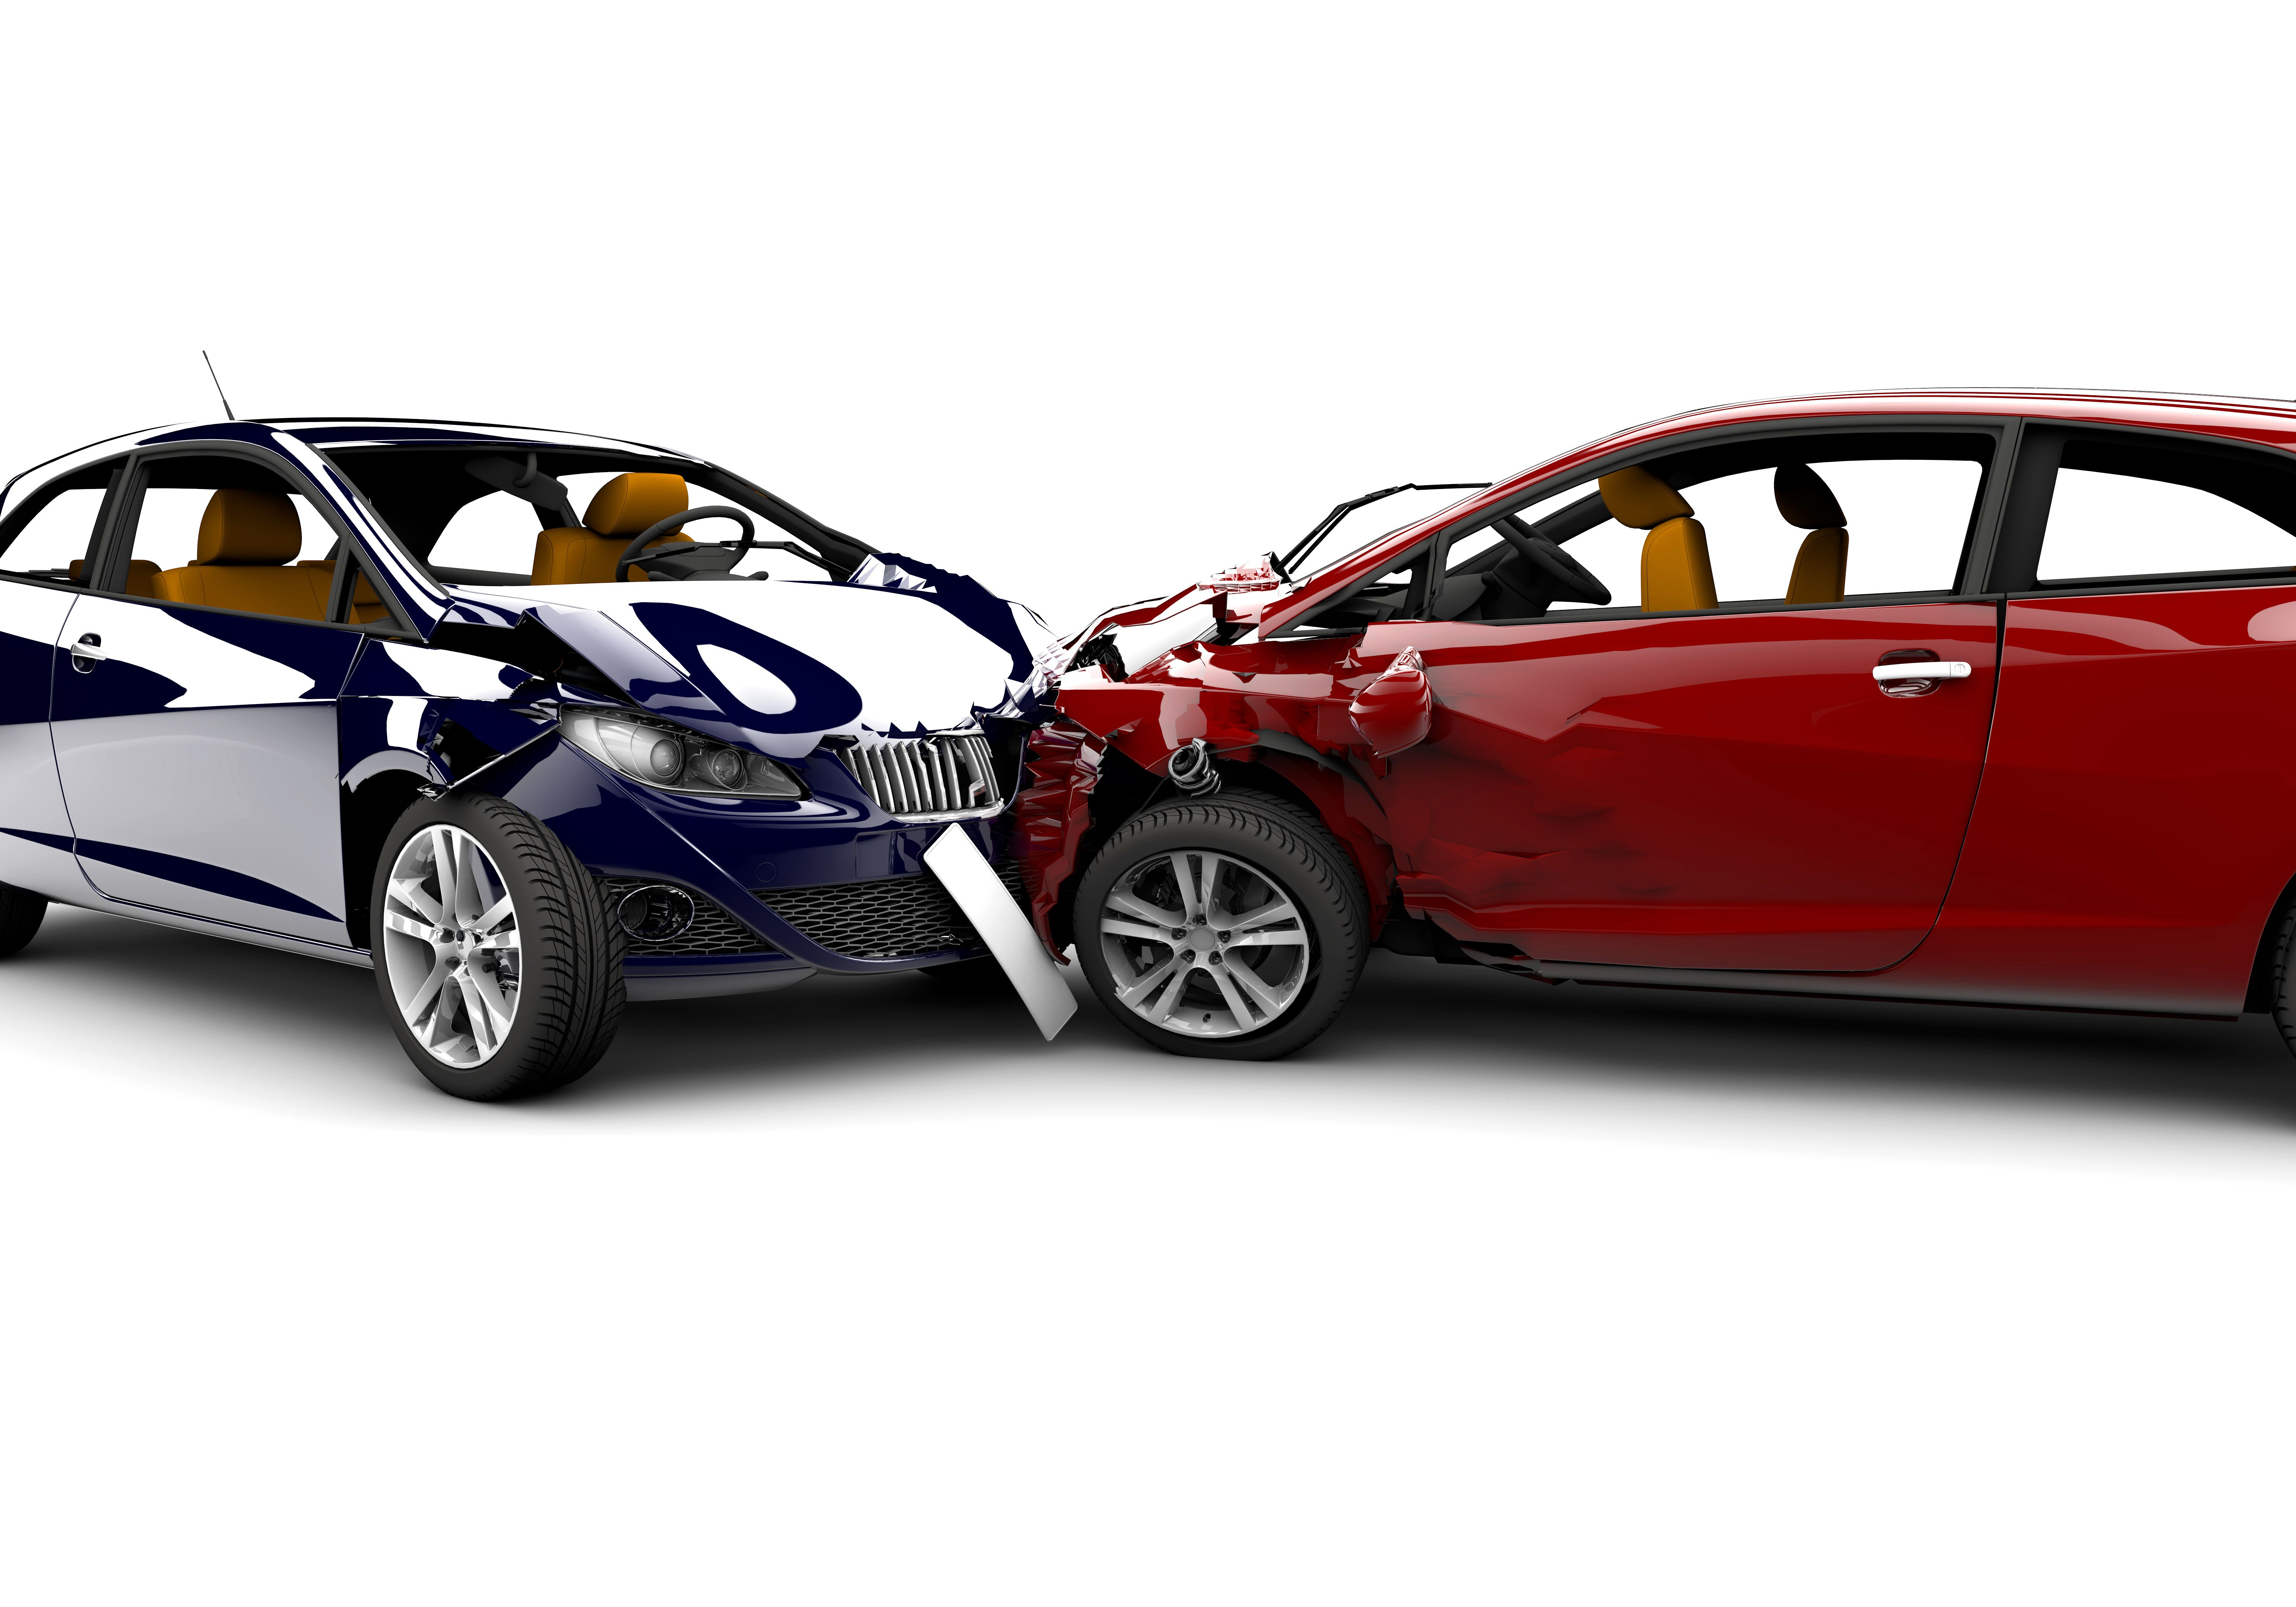 KRHB Law Firm Offers Best Car Accident Injury Attorneys In Newton,  Pennsylvania U0026 Lawyer Services In Trenton, New Jersey. For Free  Consultations!